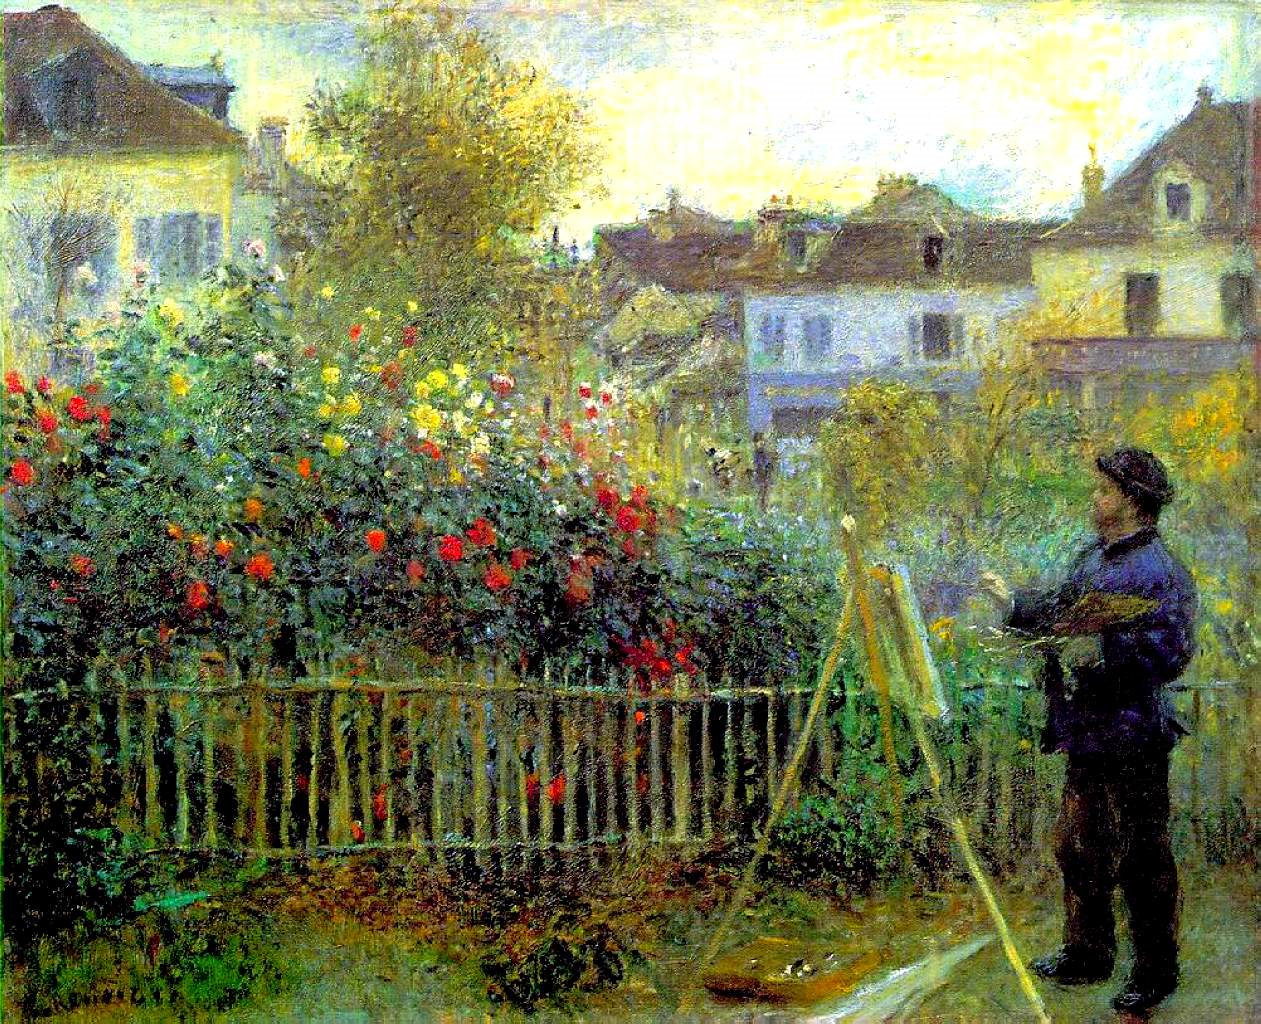 The work of cot and renoir